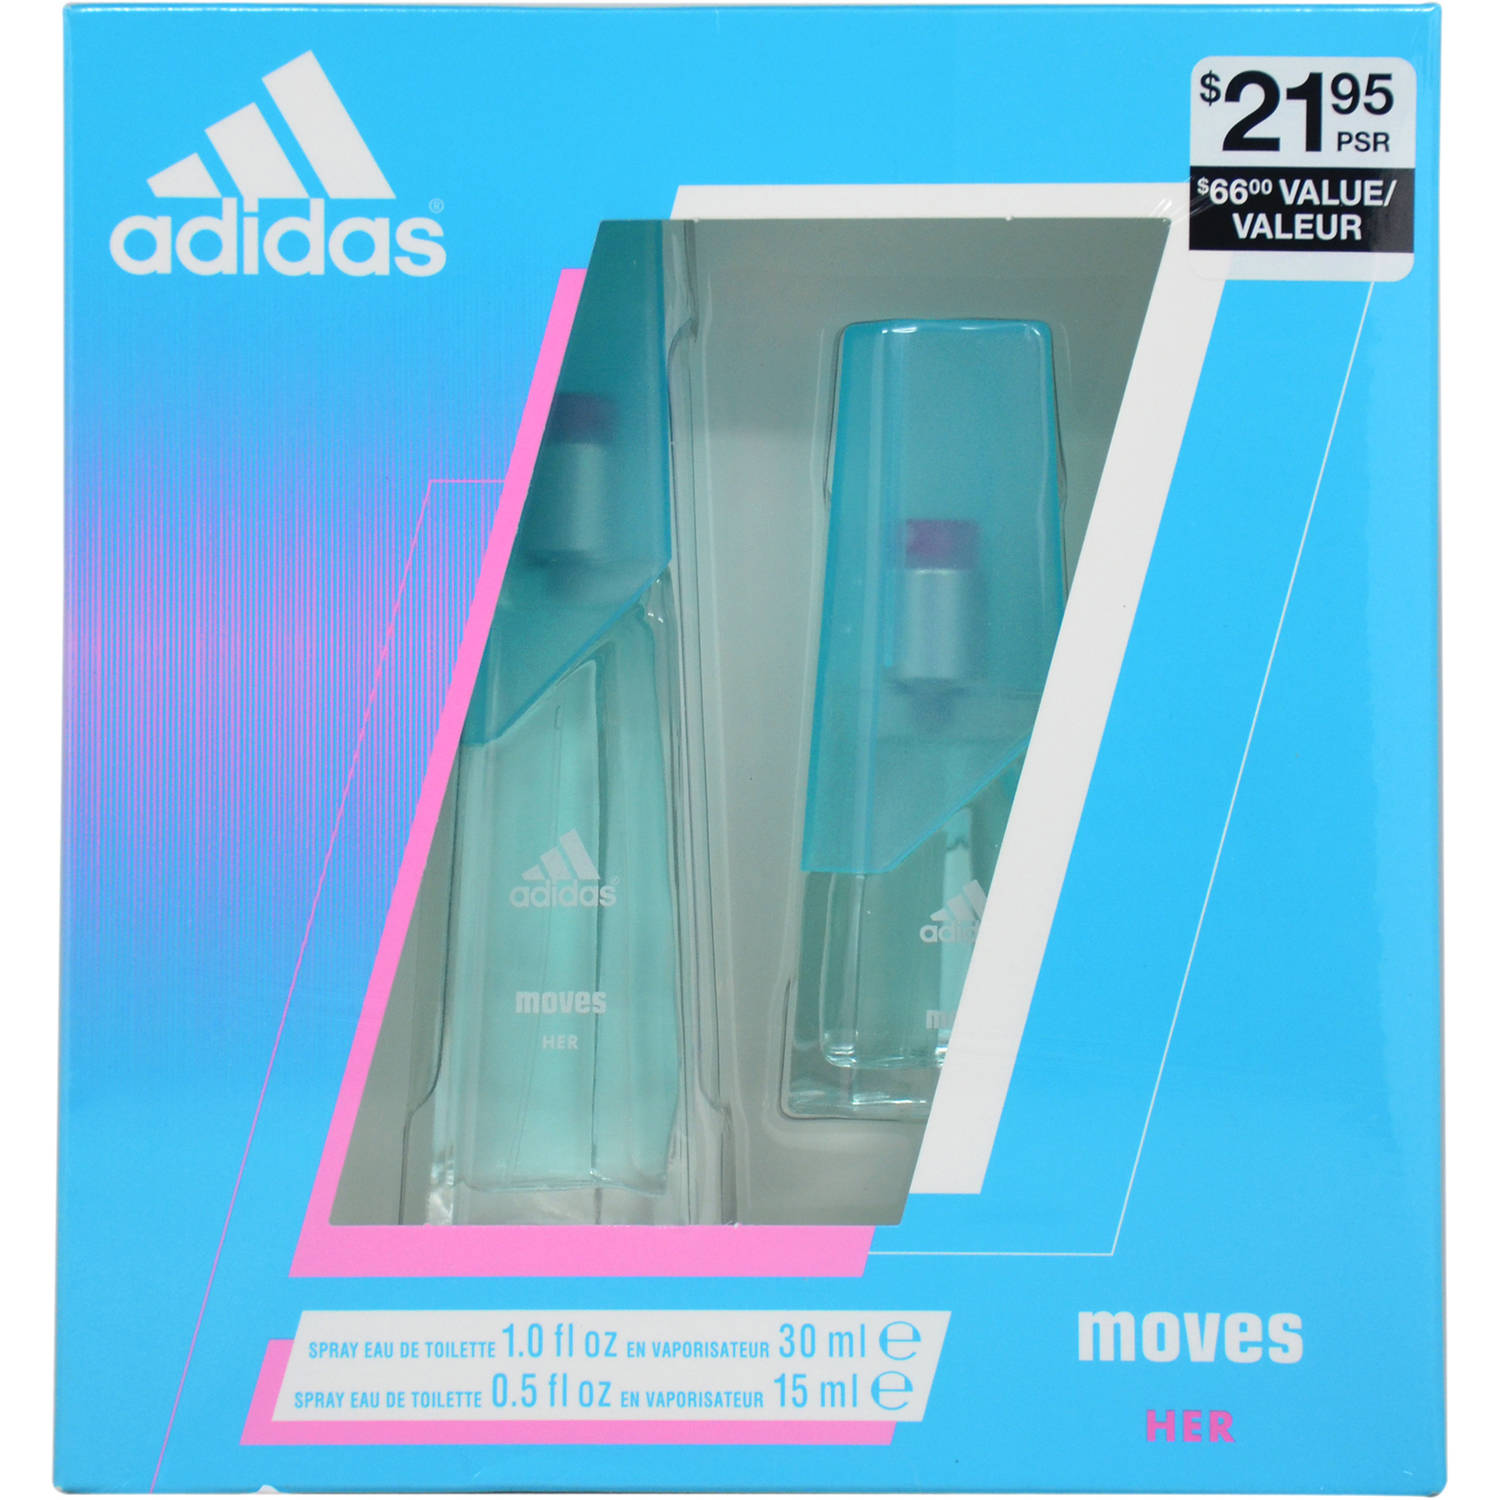 Adidas Adidas Moves Gift Set, 2 pc